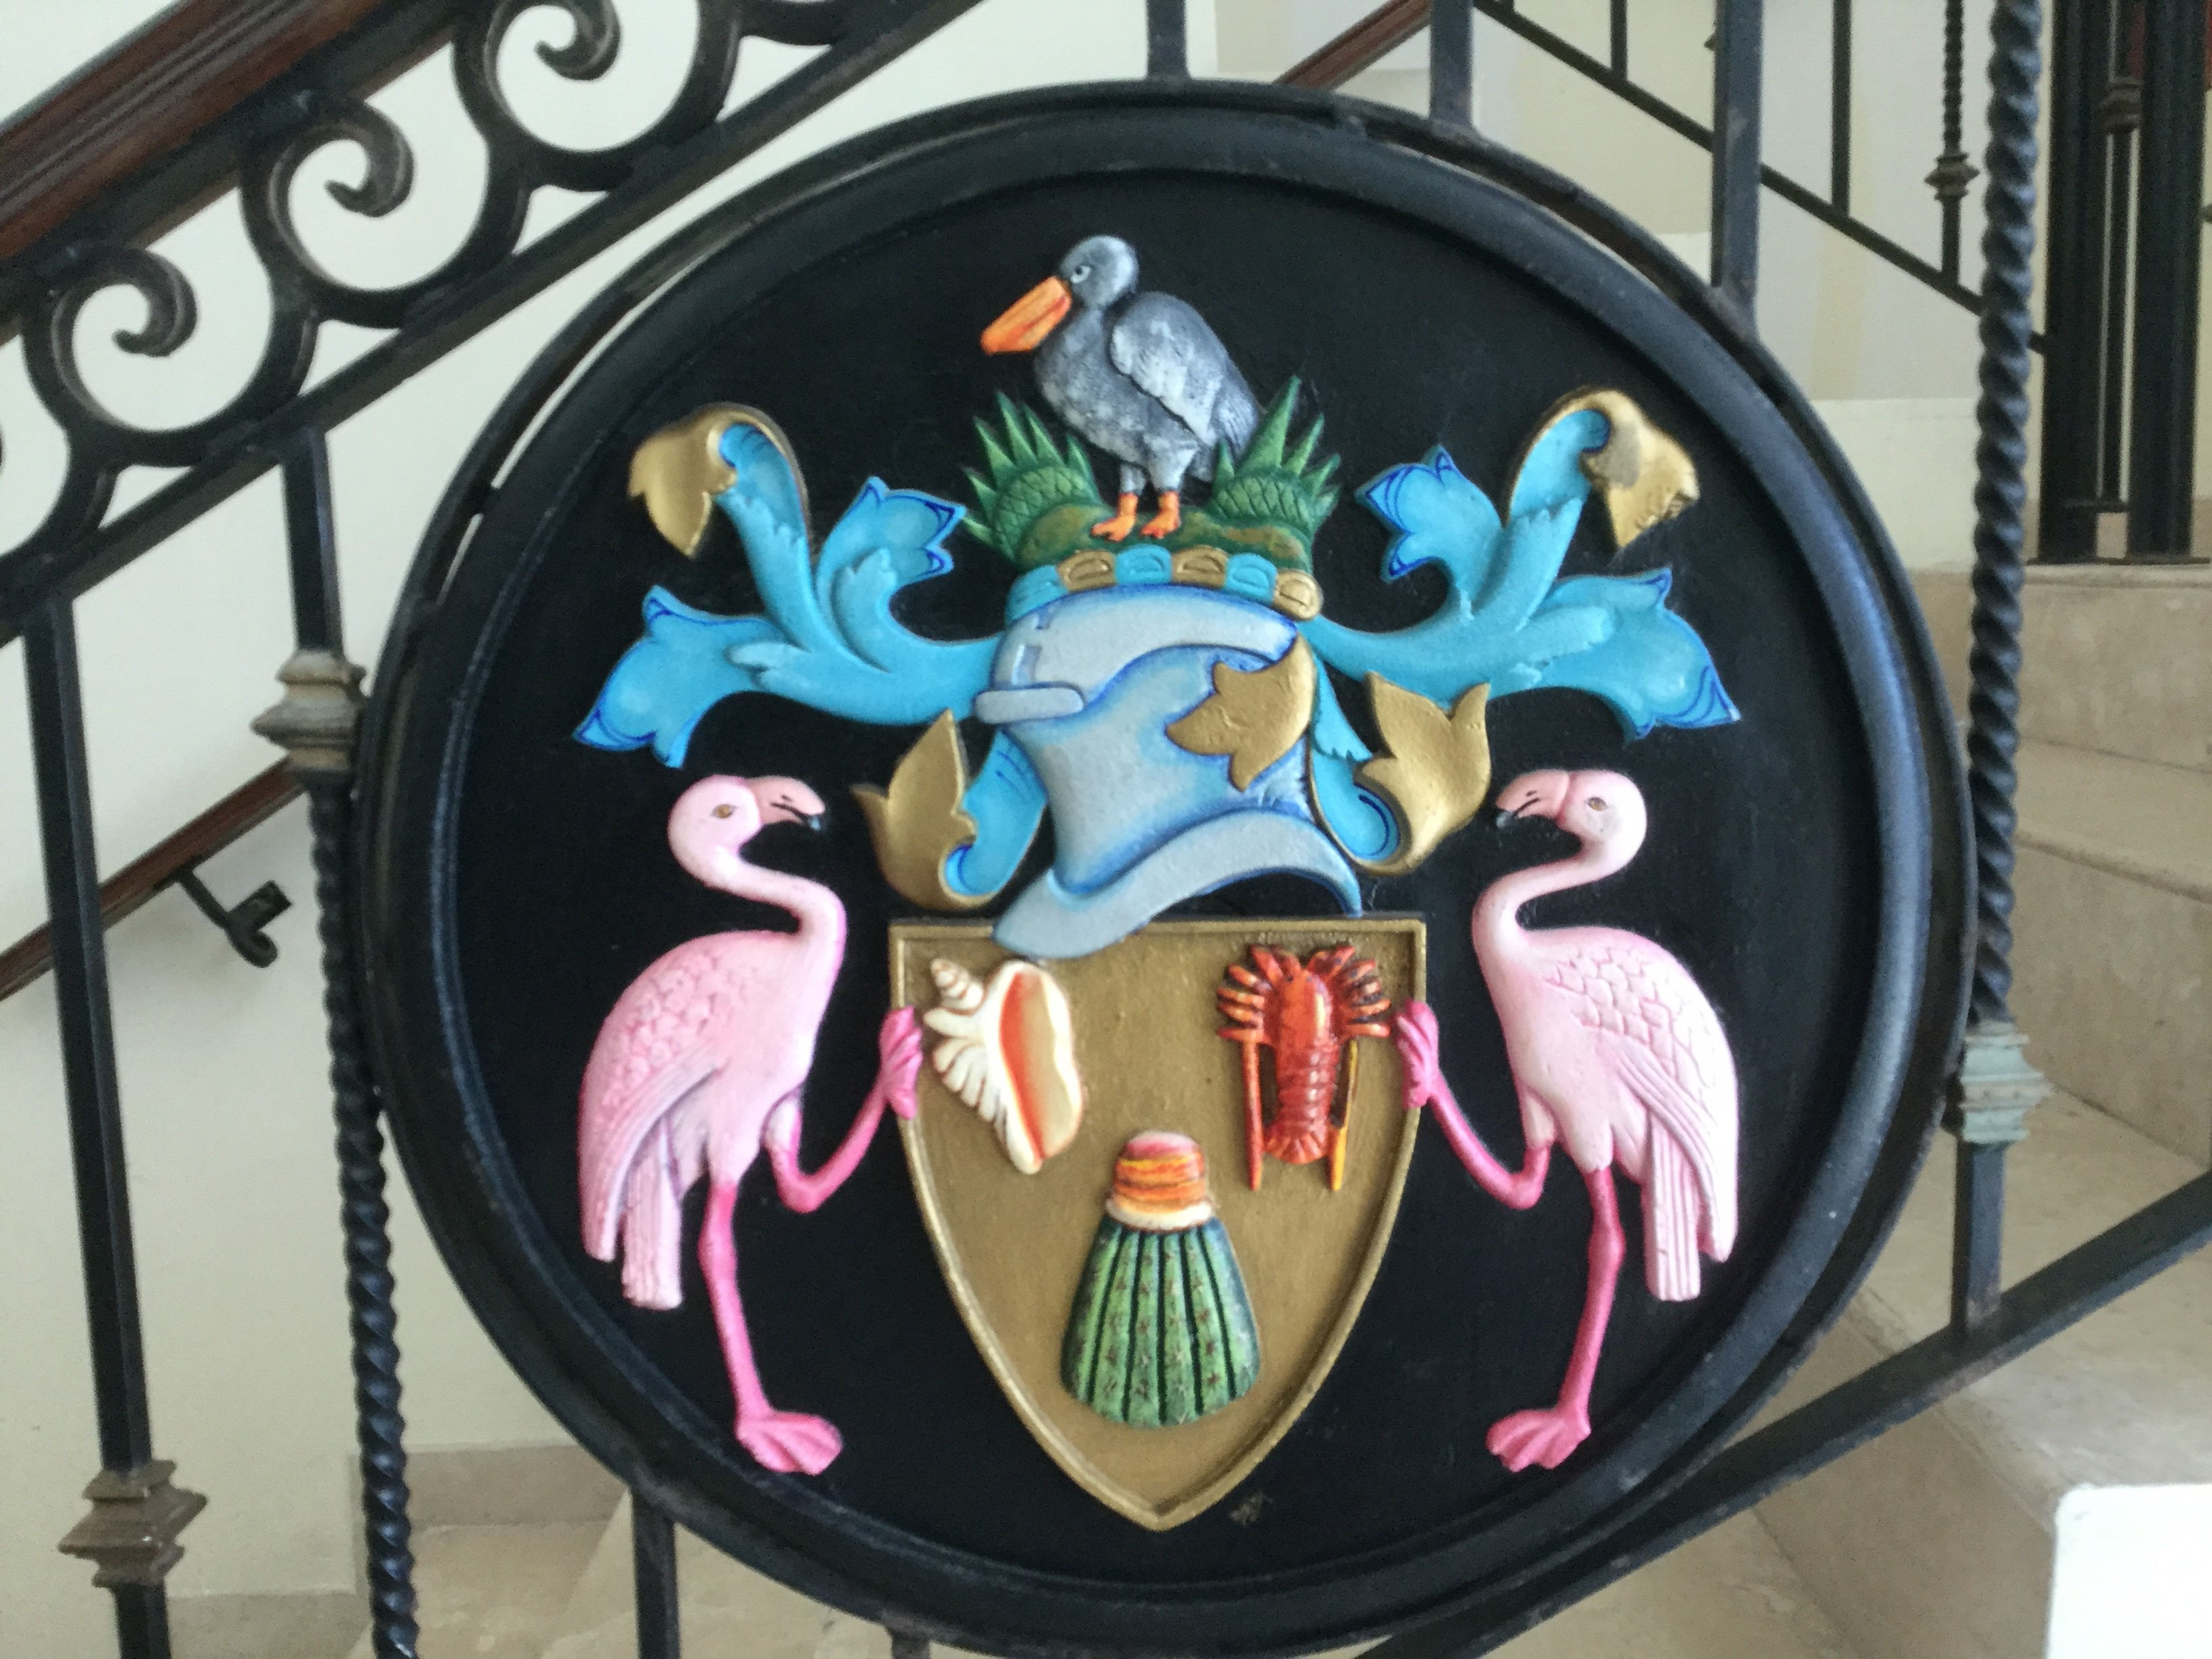 TCI House of Assembly Crest